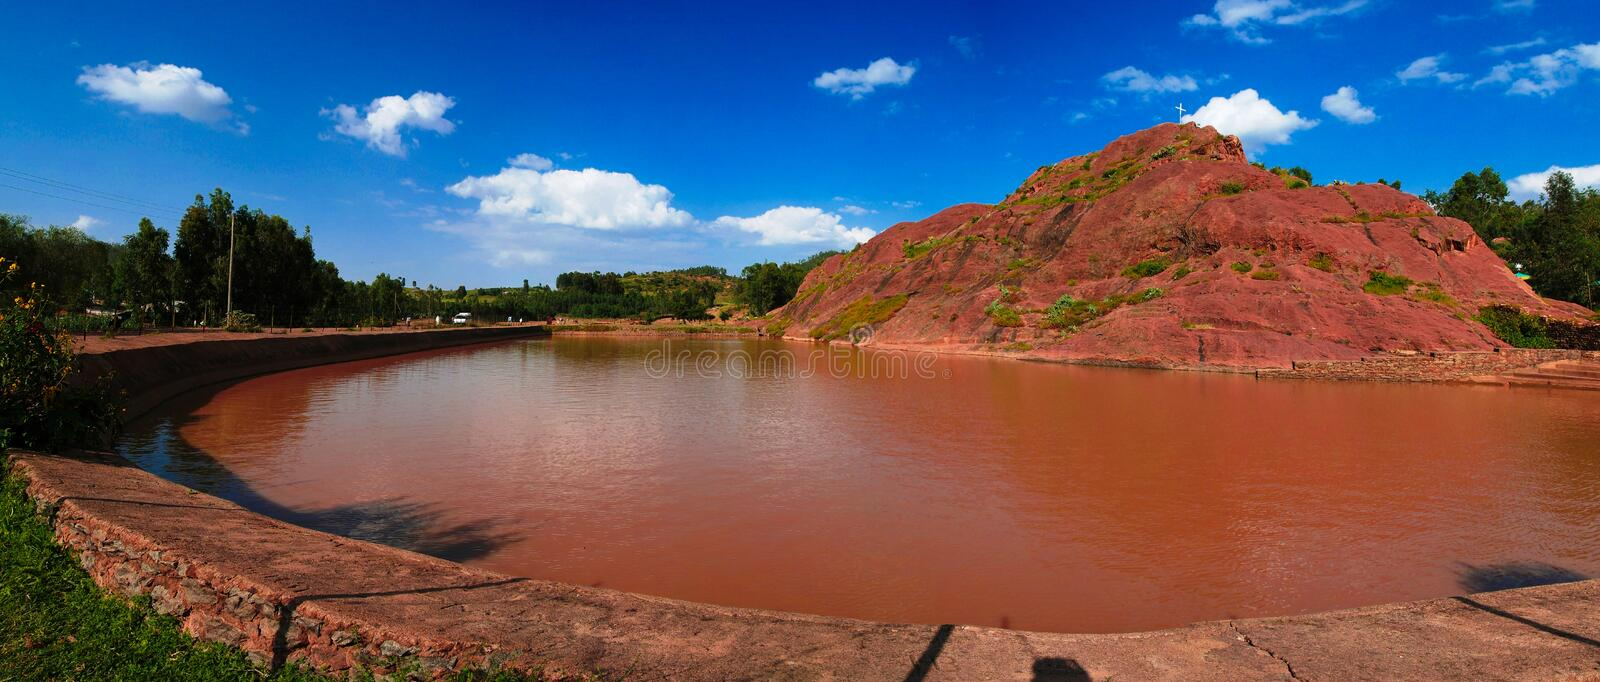 Rural landscape with pond aka queen Sheba bath, Axum, Ethiopia royalty free stock photography